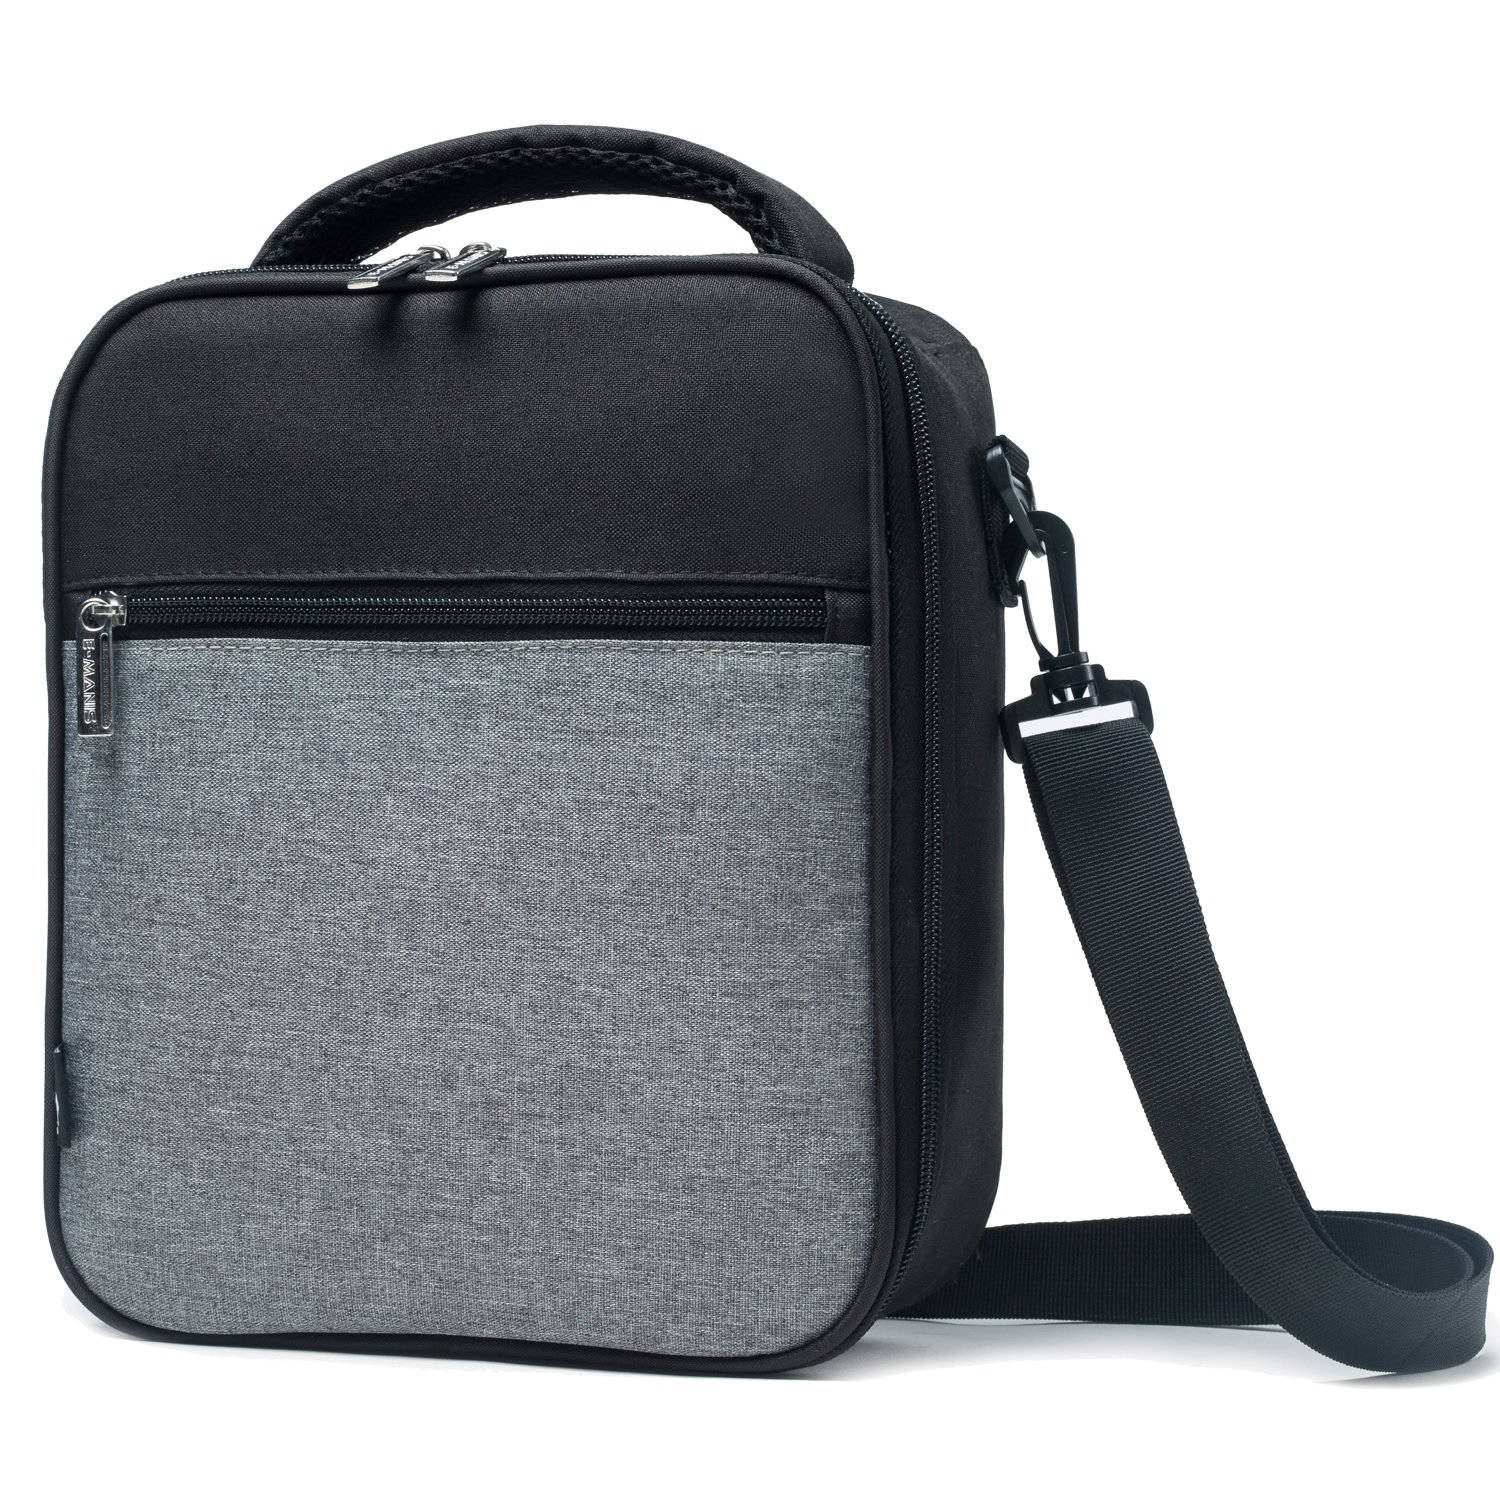 E-manis Insulated Lunch Bag Lunch Box Cooler Bag with Shoulder Strap for Men Women Kids (black+gray)